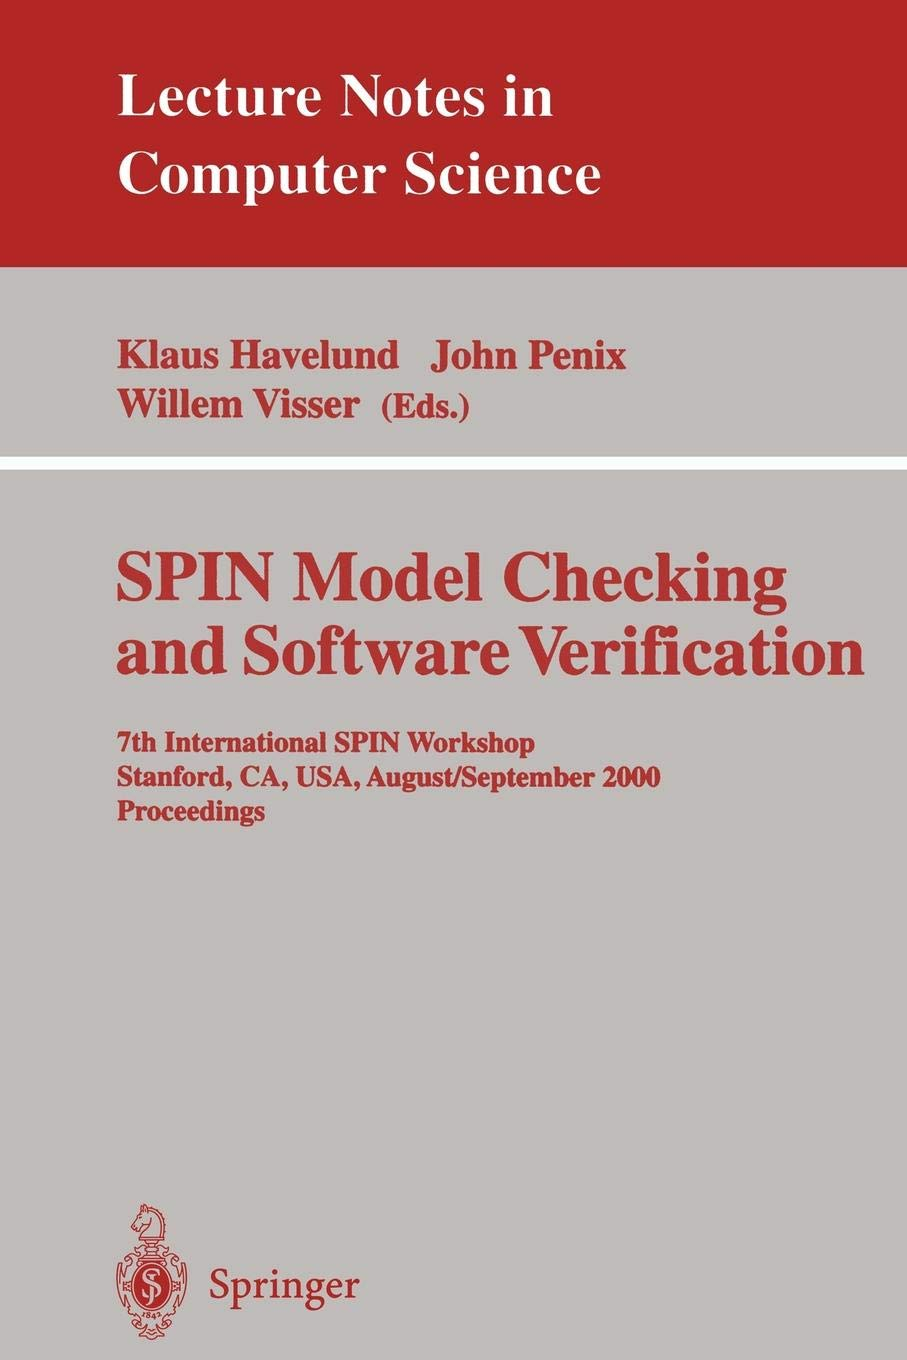 SPIN Model Checking and Software Verification: 7th